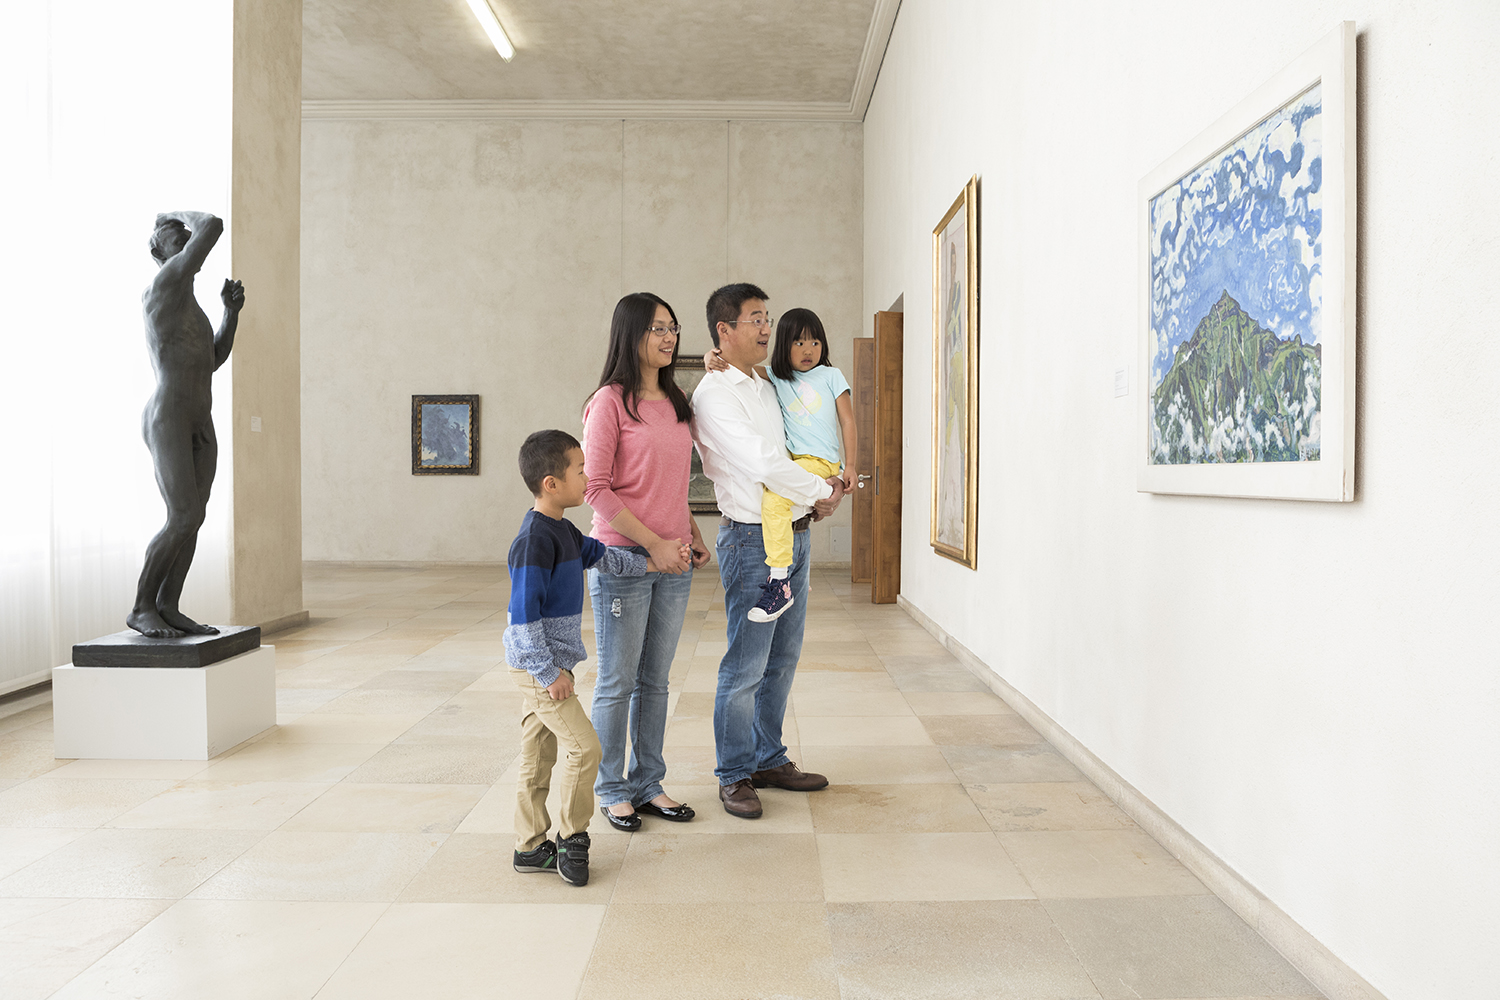 Chinese Family looking at painting